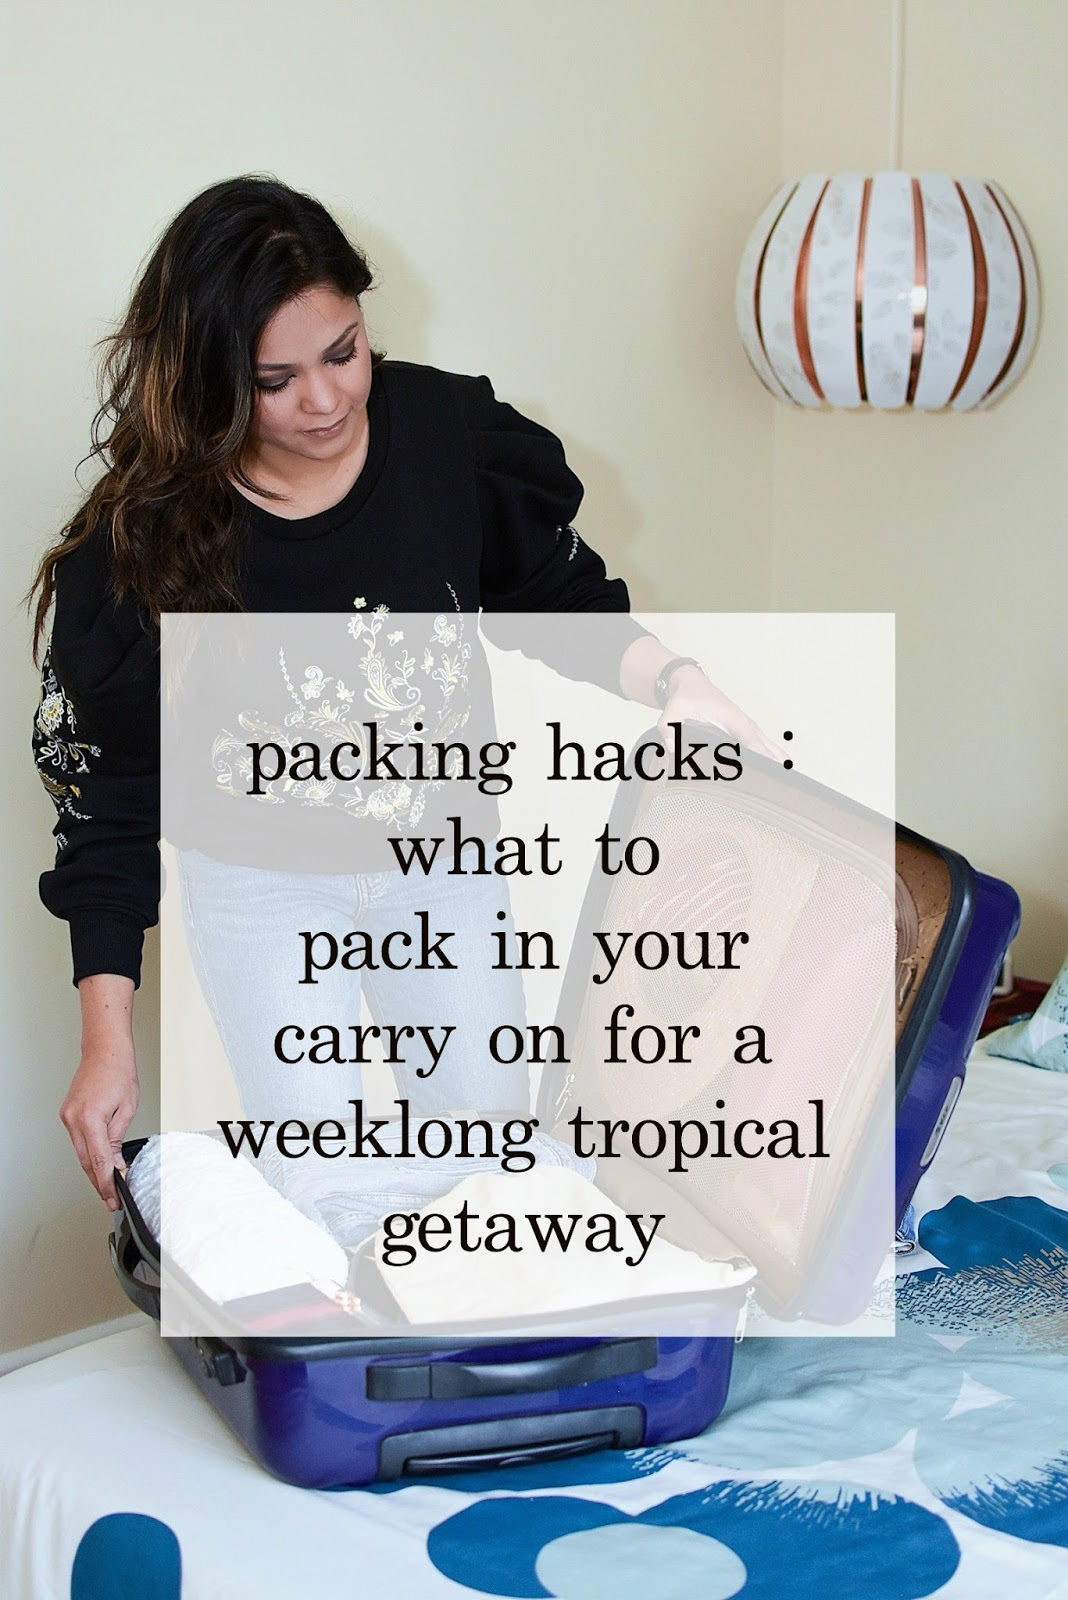 what to pack in your carry on, seven days of packing, holiday travel, packing hack, what to bring to a tropical getaway, holiday travelling, myriad musings, jeans, lbd, saumya